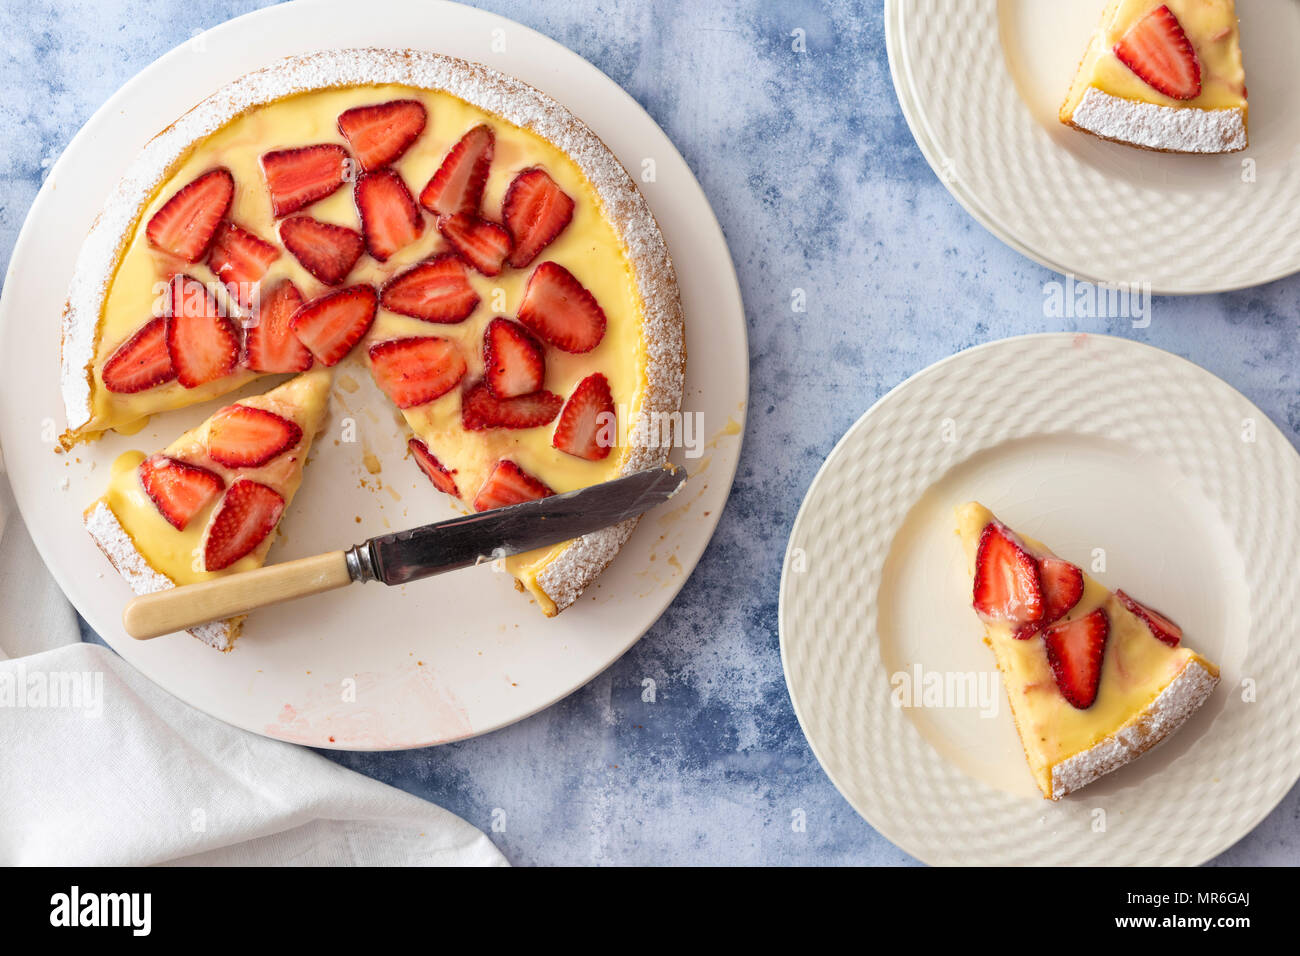 Strawberry Custard dessert cake with a knife and two serves on cake on plates. - Stock Image